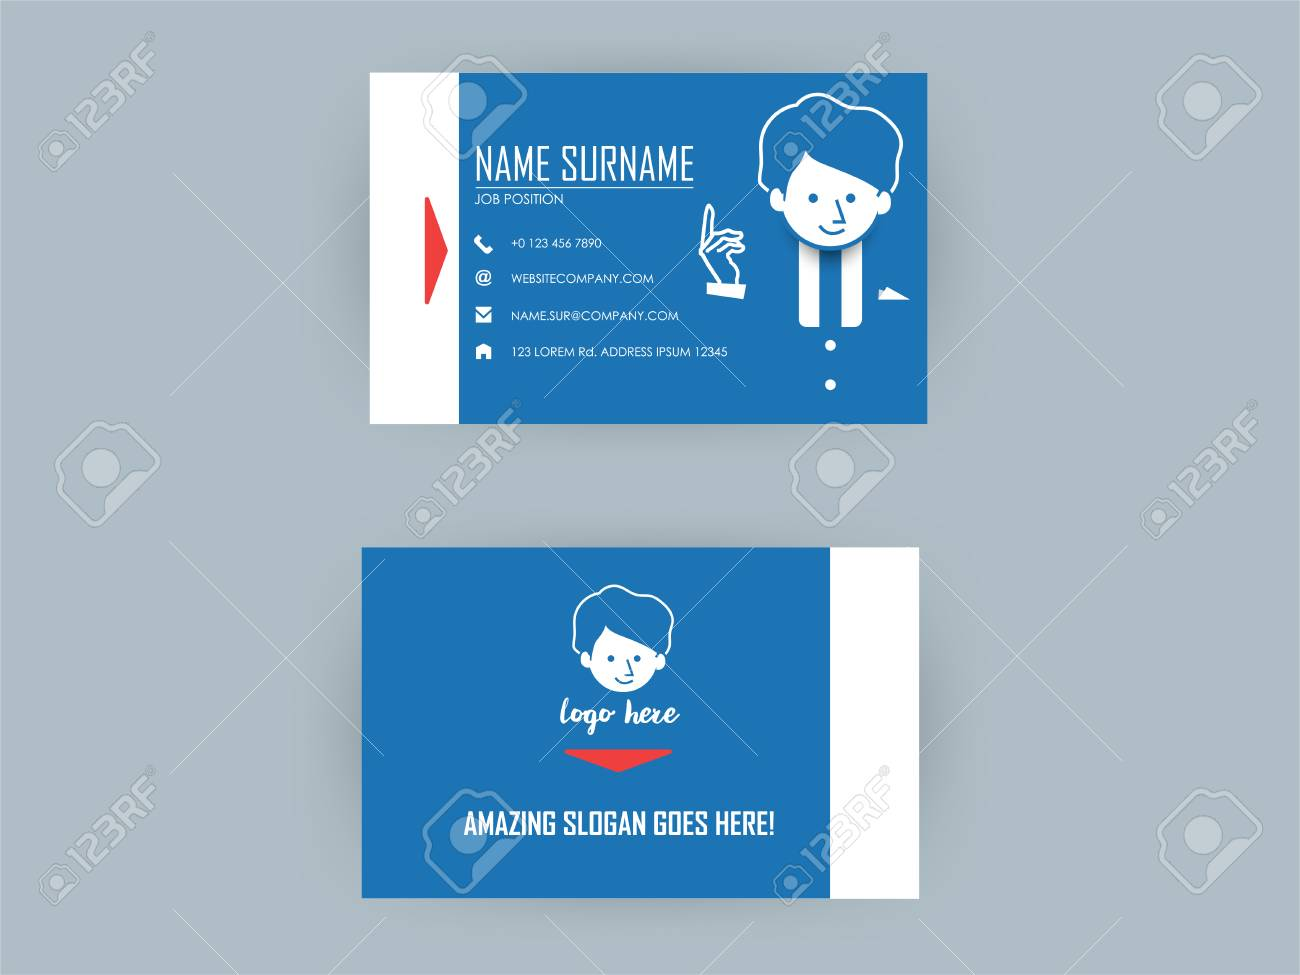 Beautiful Graphic Design Vector Of Blue Color Business Card Royalty ...